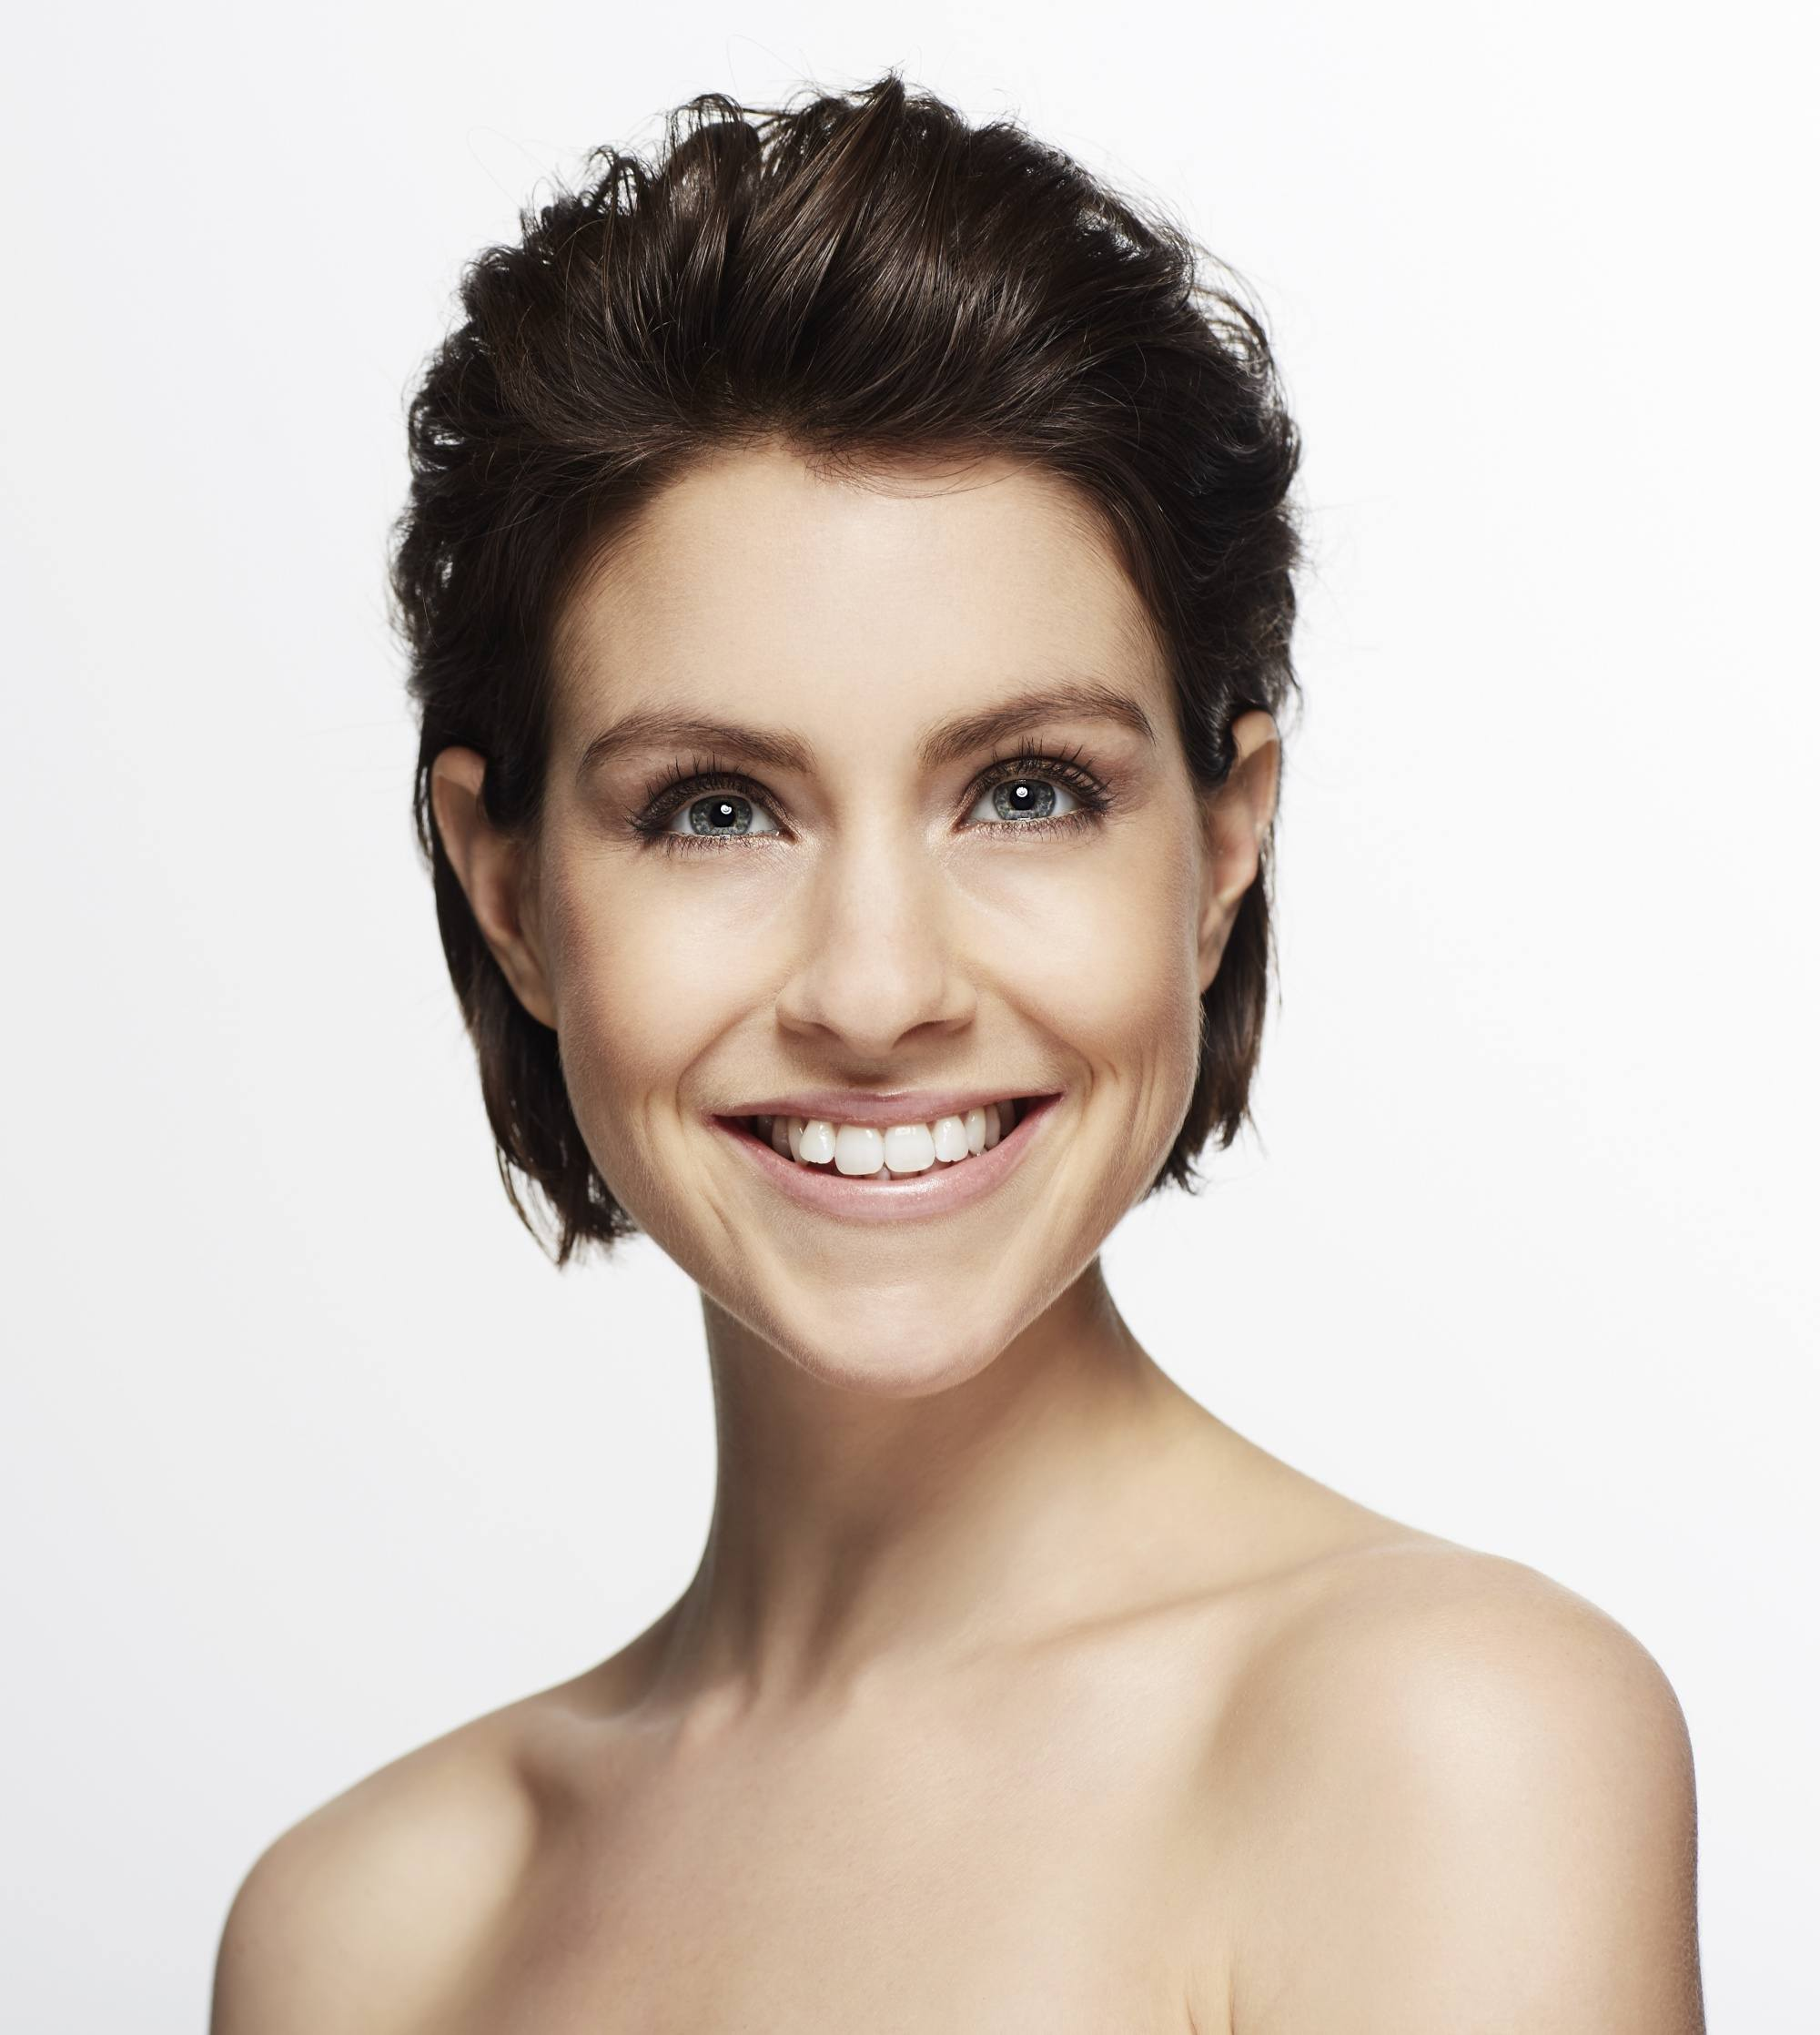 Short hairstyle for long faces: Closeup shot of a woman with short dark slicked back hair